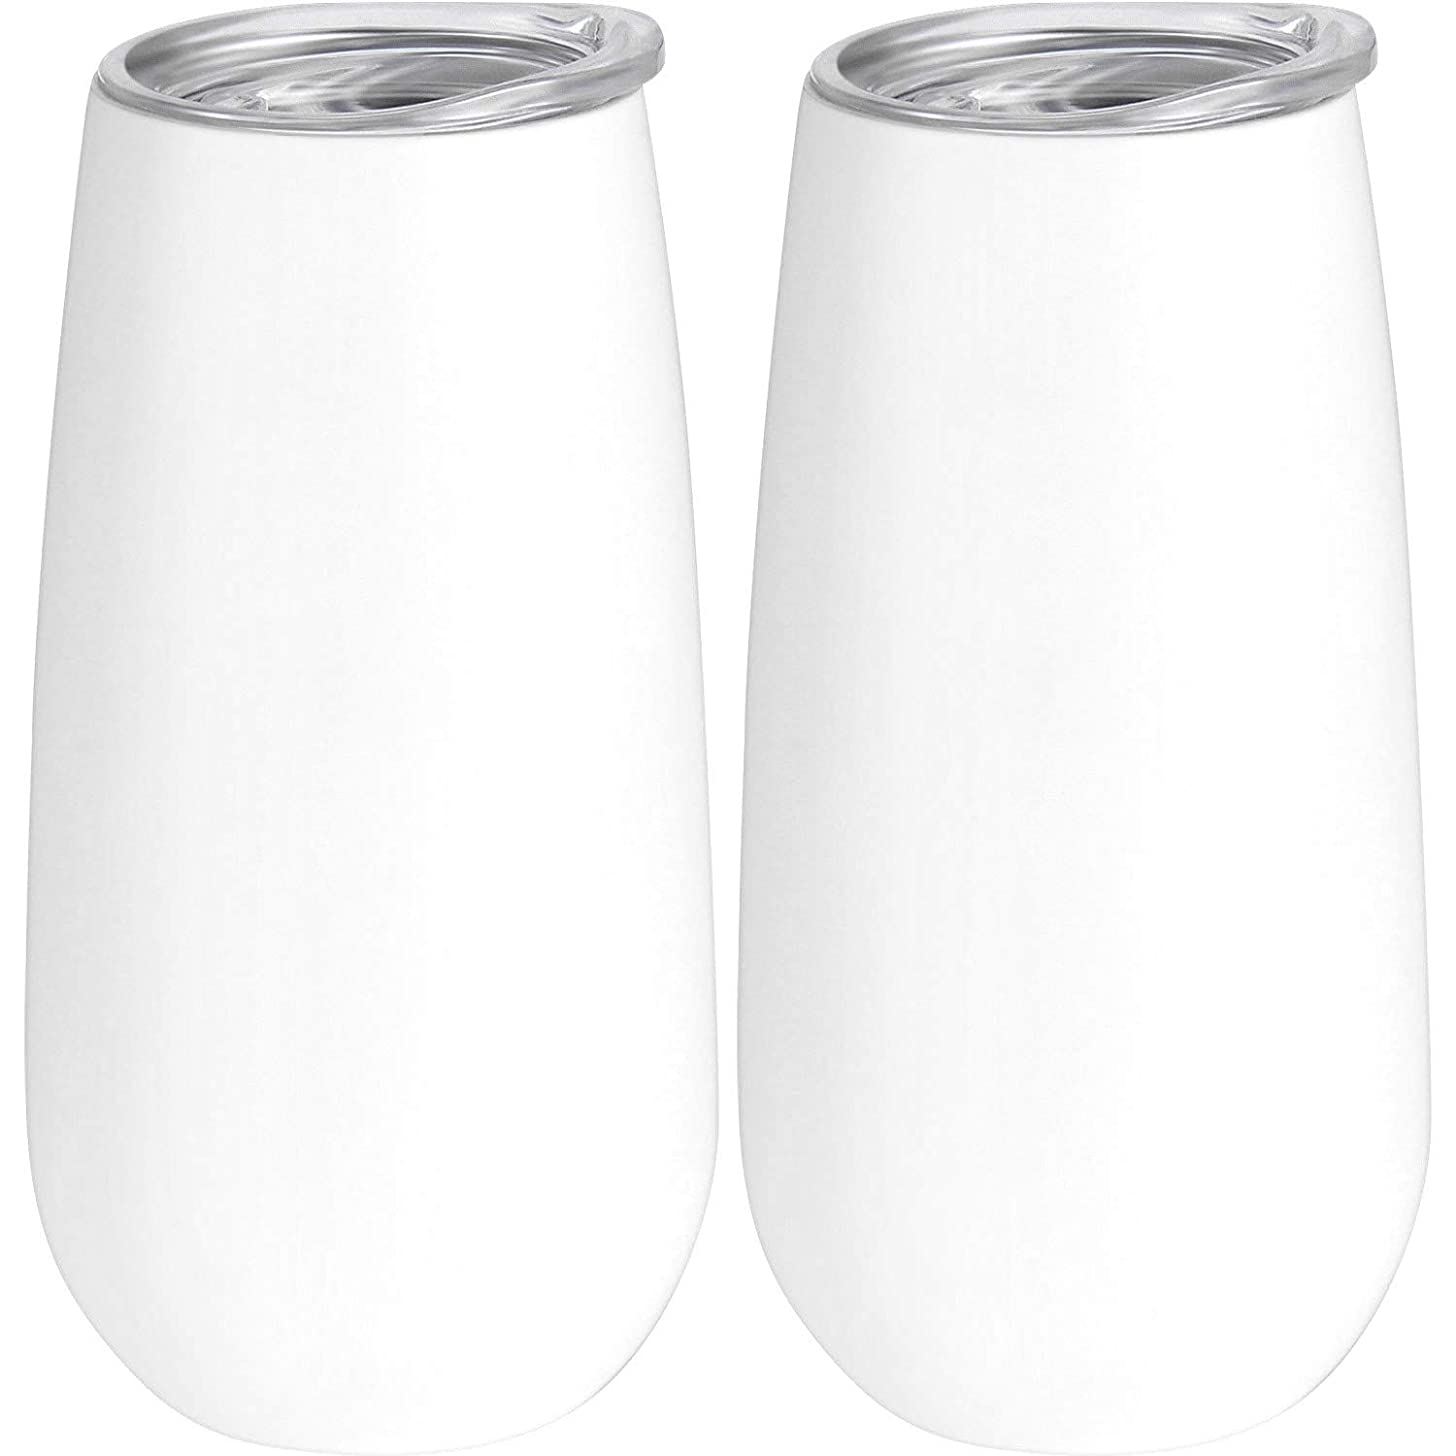 Skylety 2 Packs Double-insulated Stemless Champagne Flutes Wine Tumbler, 6 OZ Unbreakable Cocktail Cups Reusable Champagne Toasting Glasses with Lids (White)